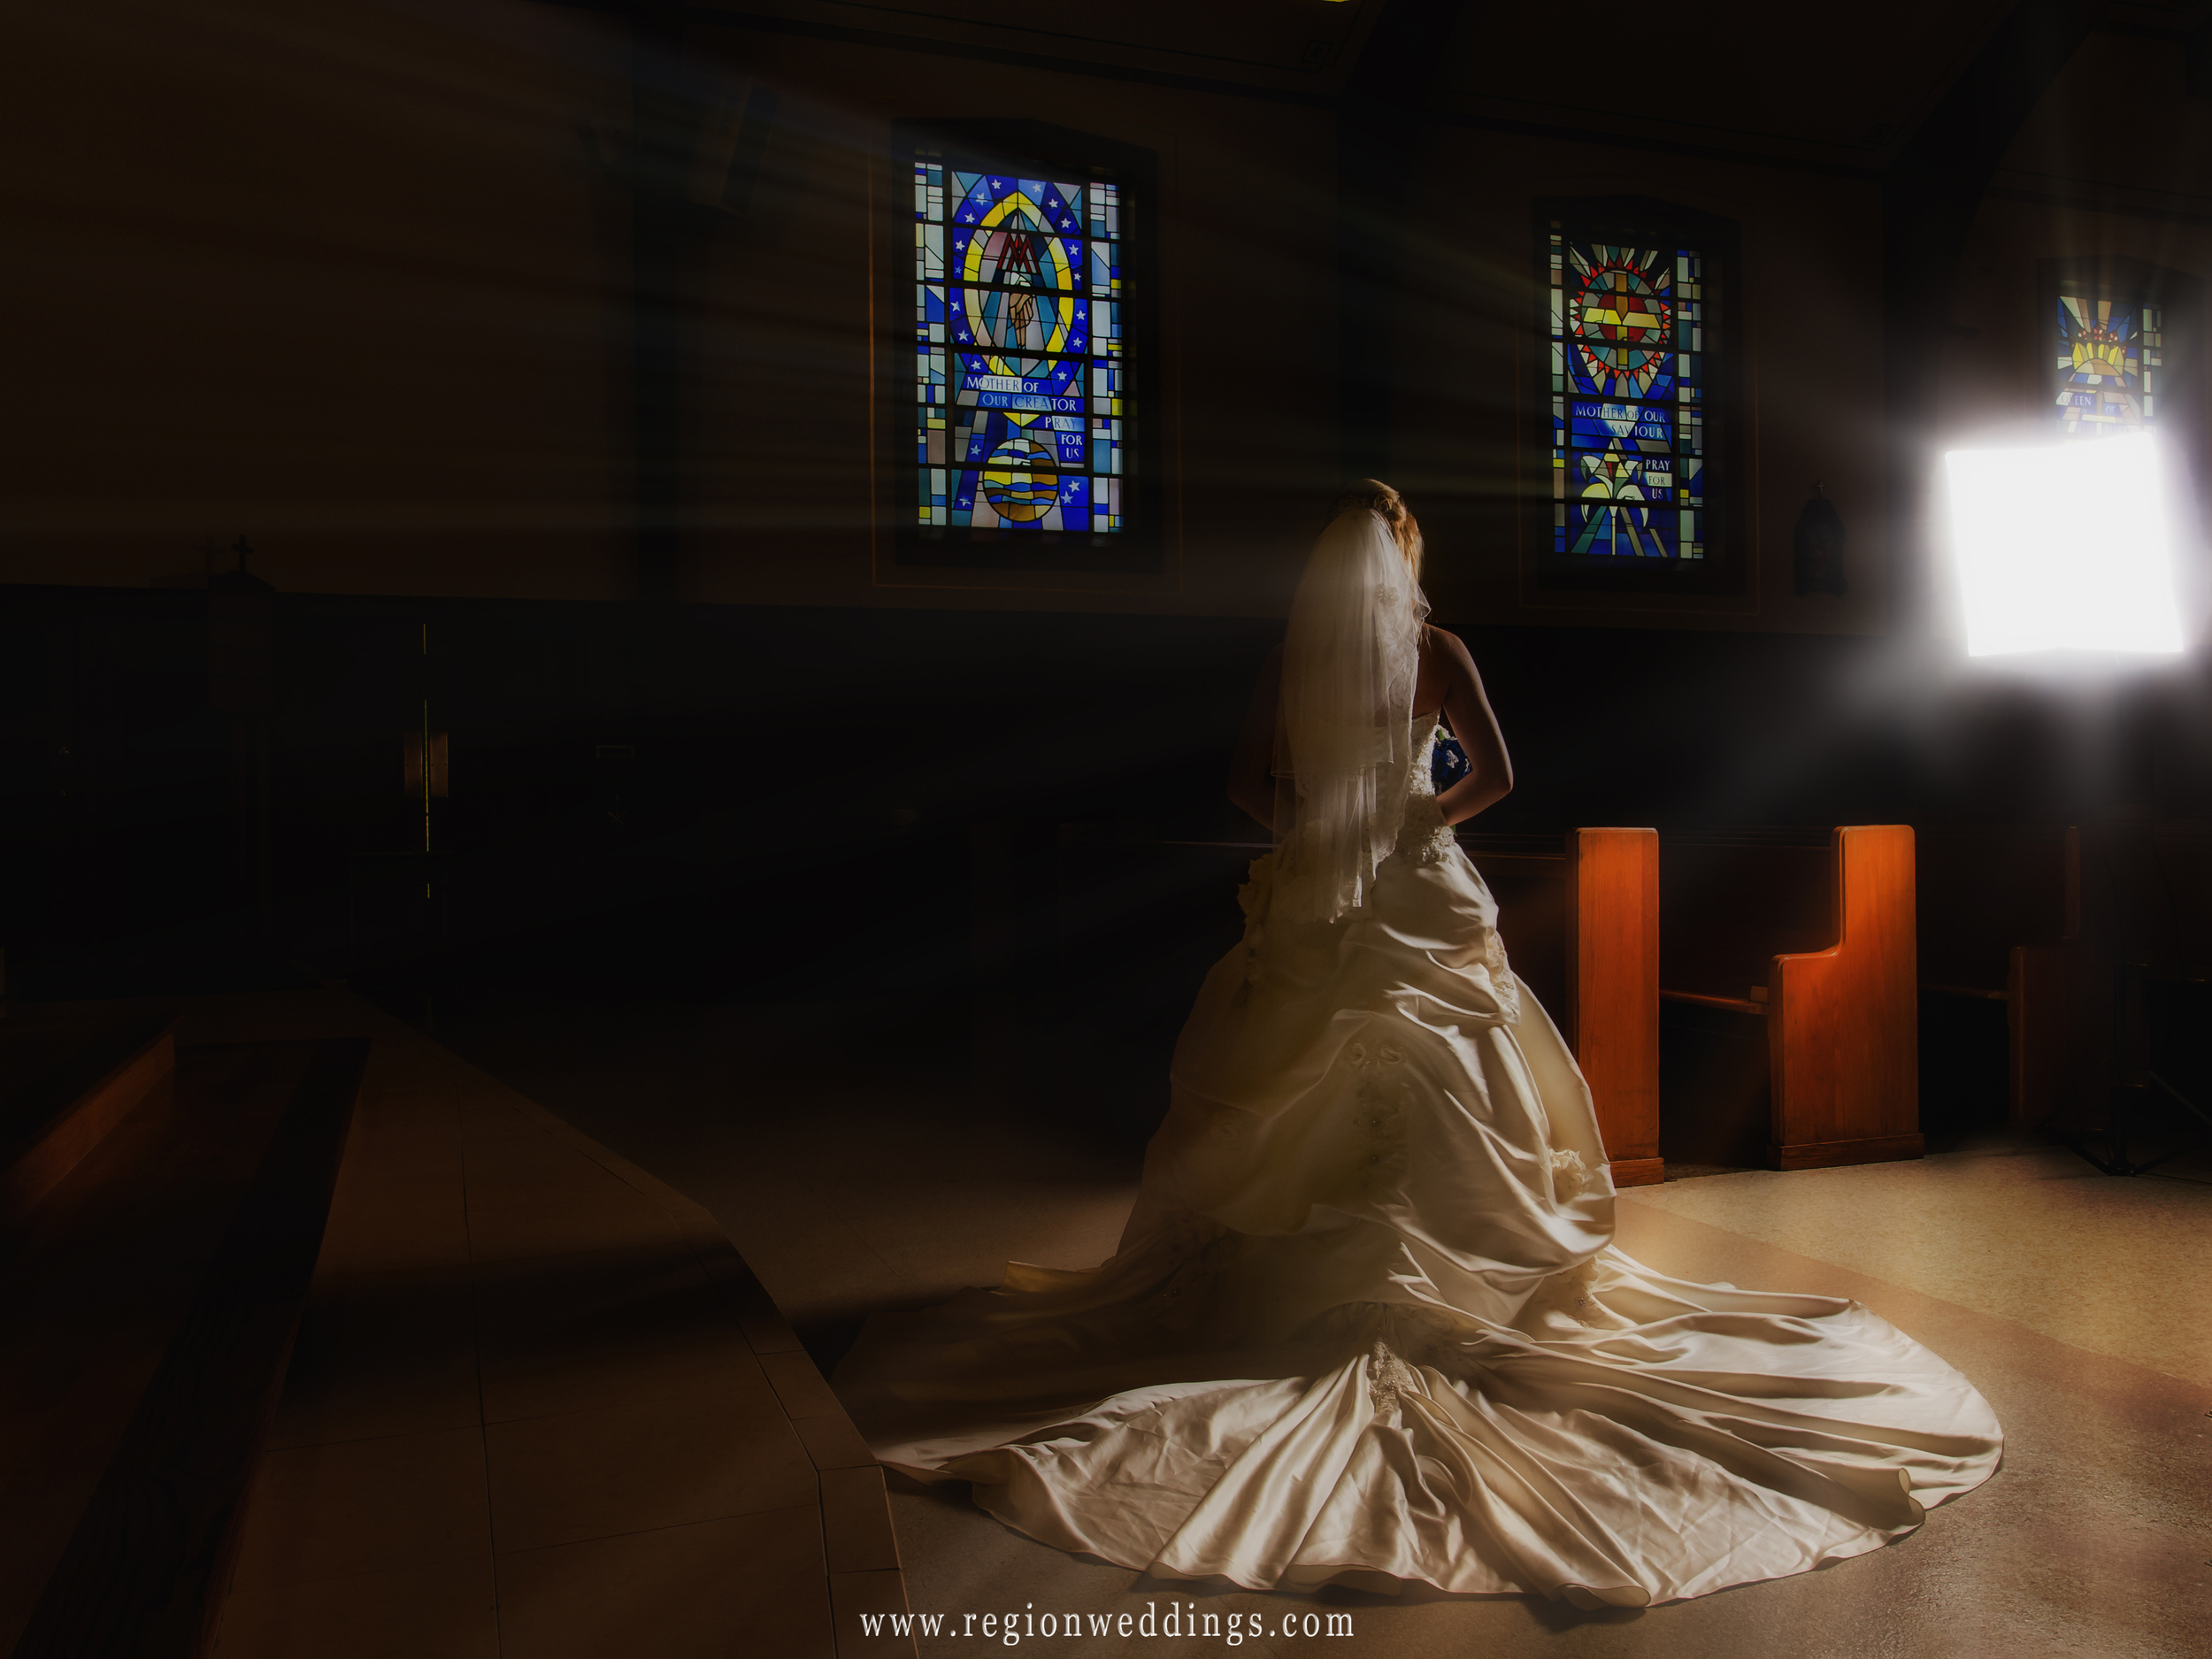 A dramatic looking image of the back of the bride's dress inside a dark church.